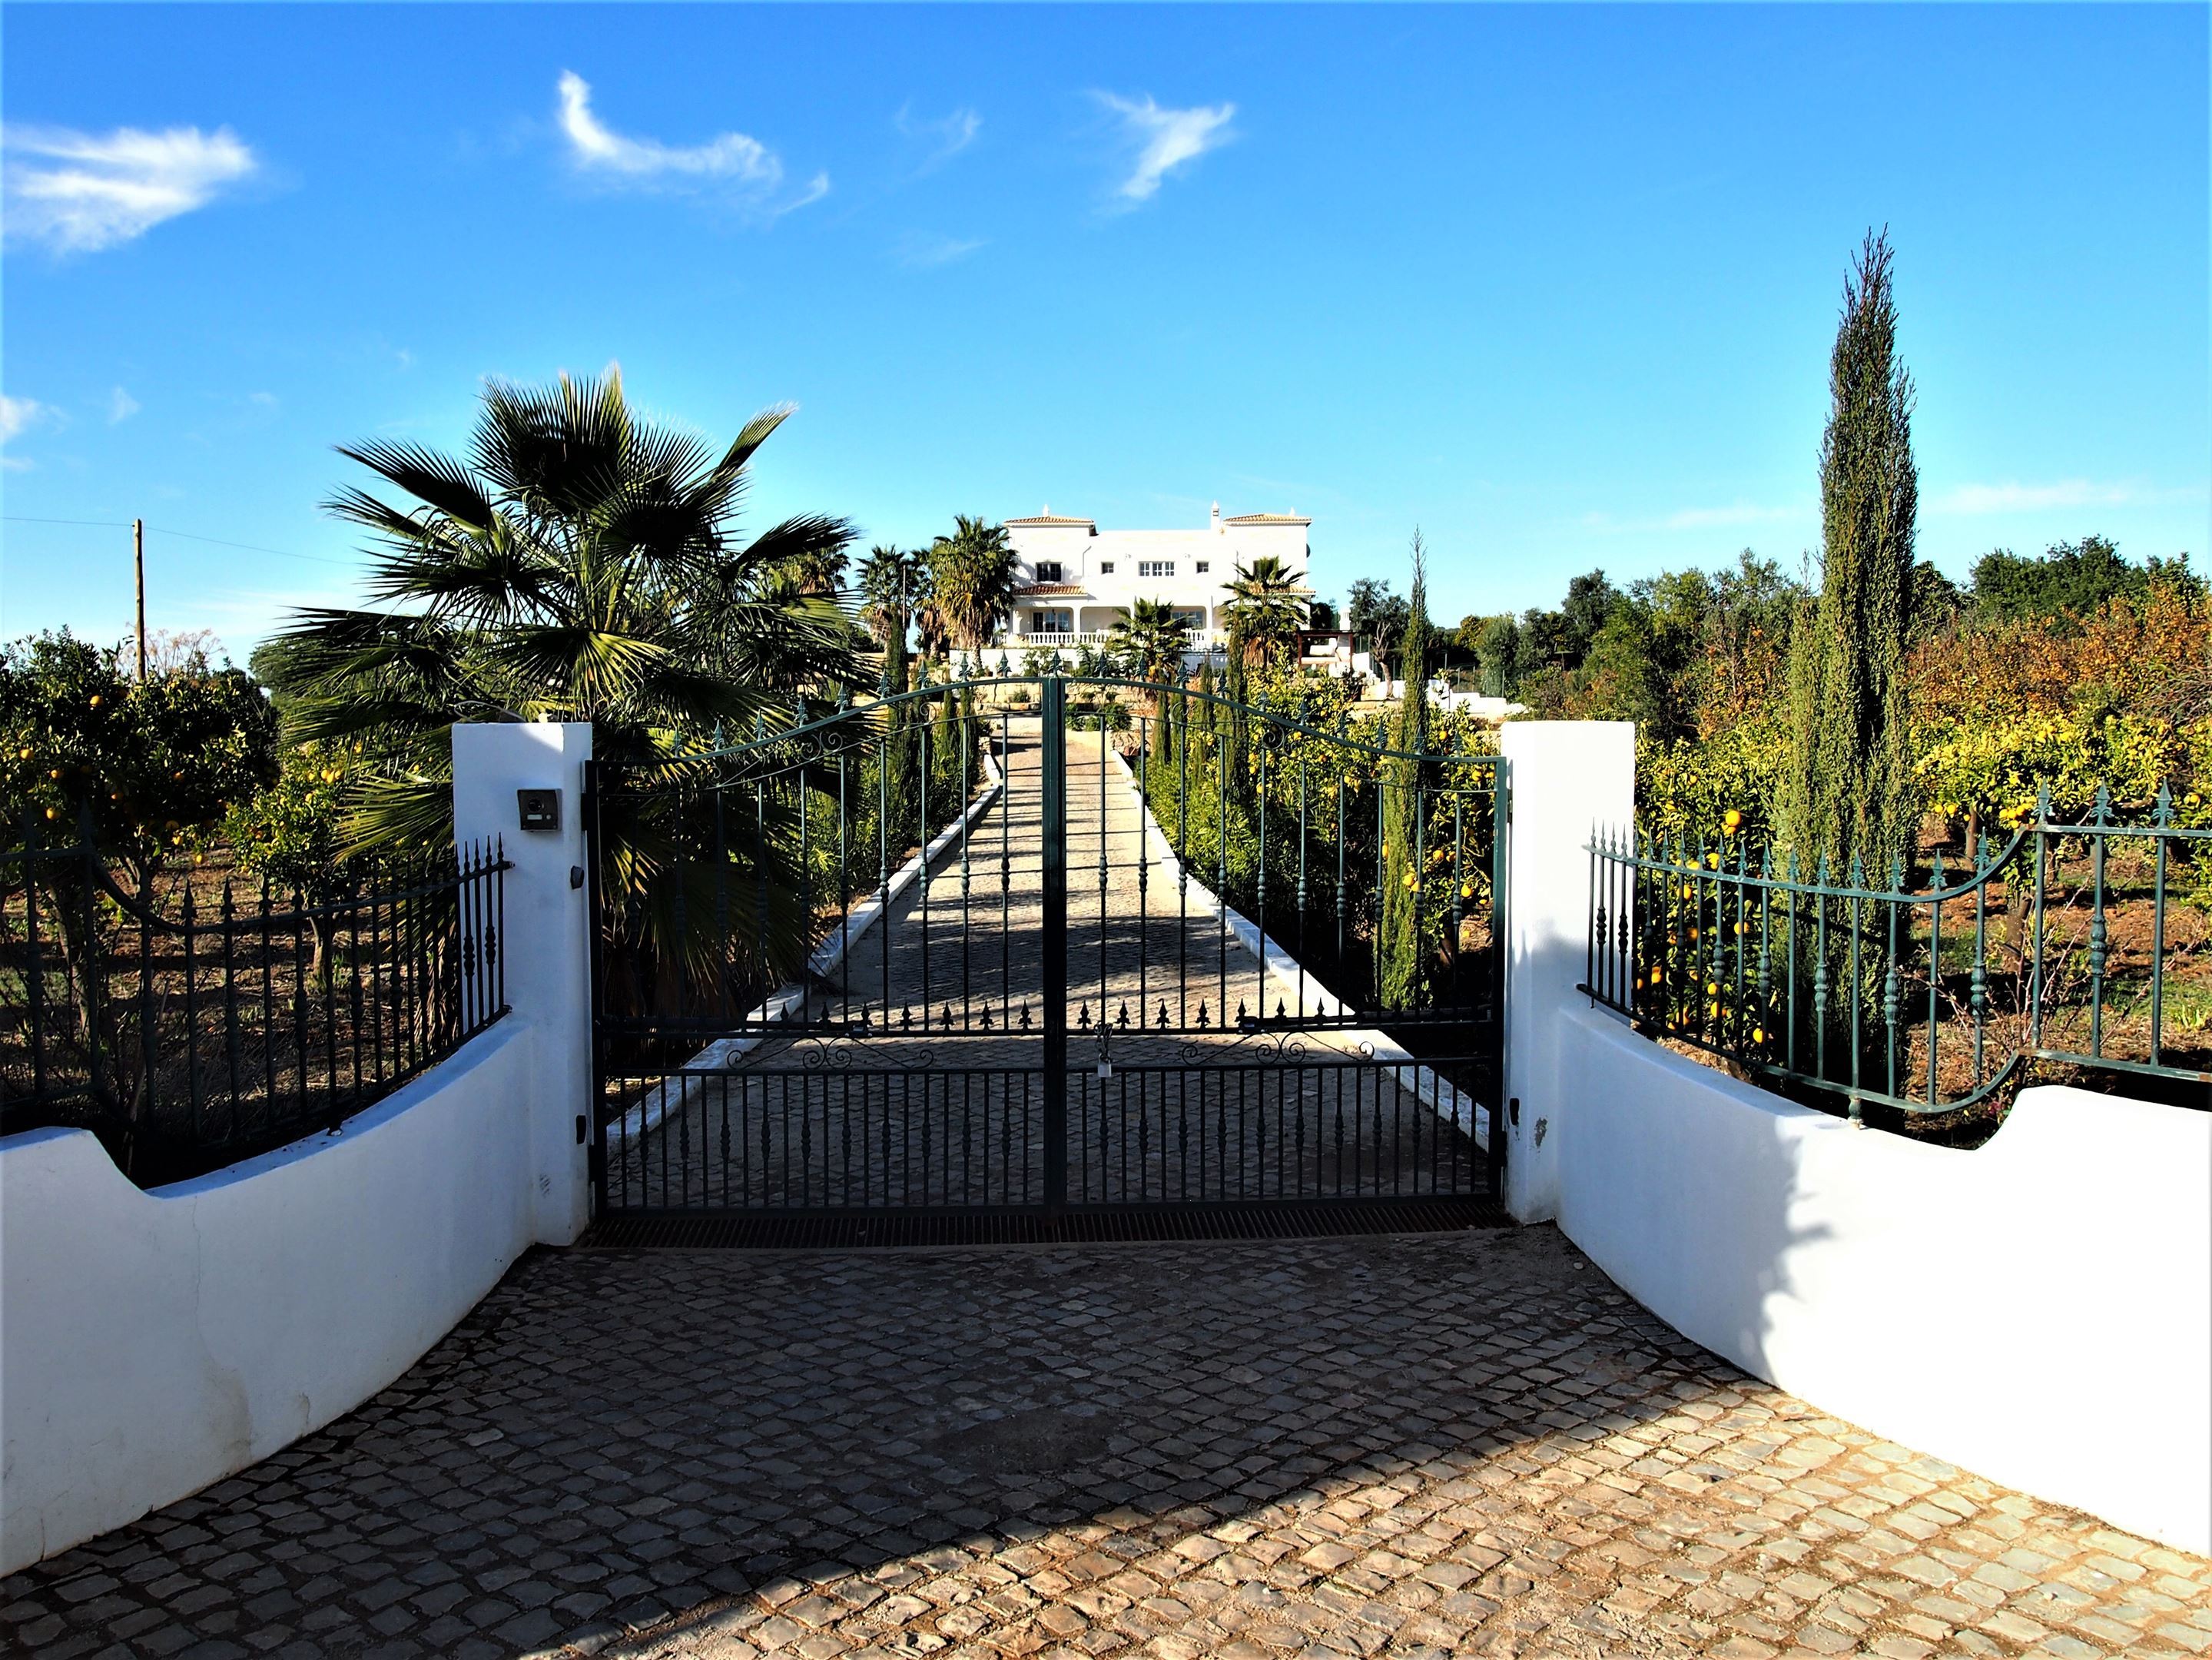 Entrecolinas, Paderne Algarve - Bed and Breakfast